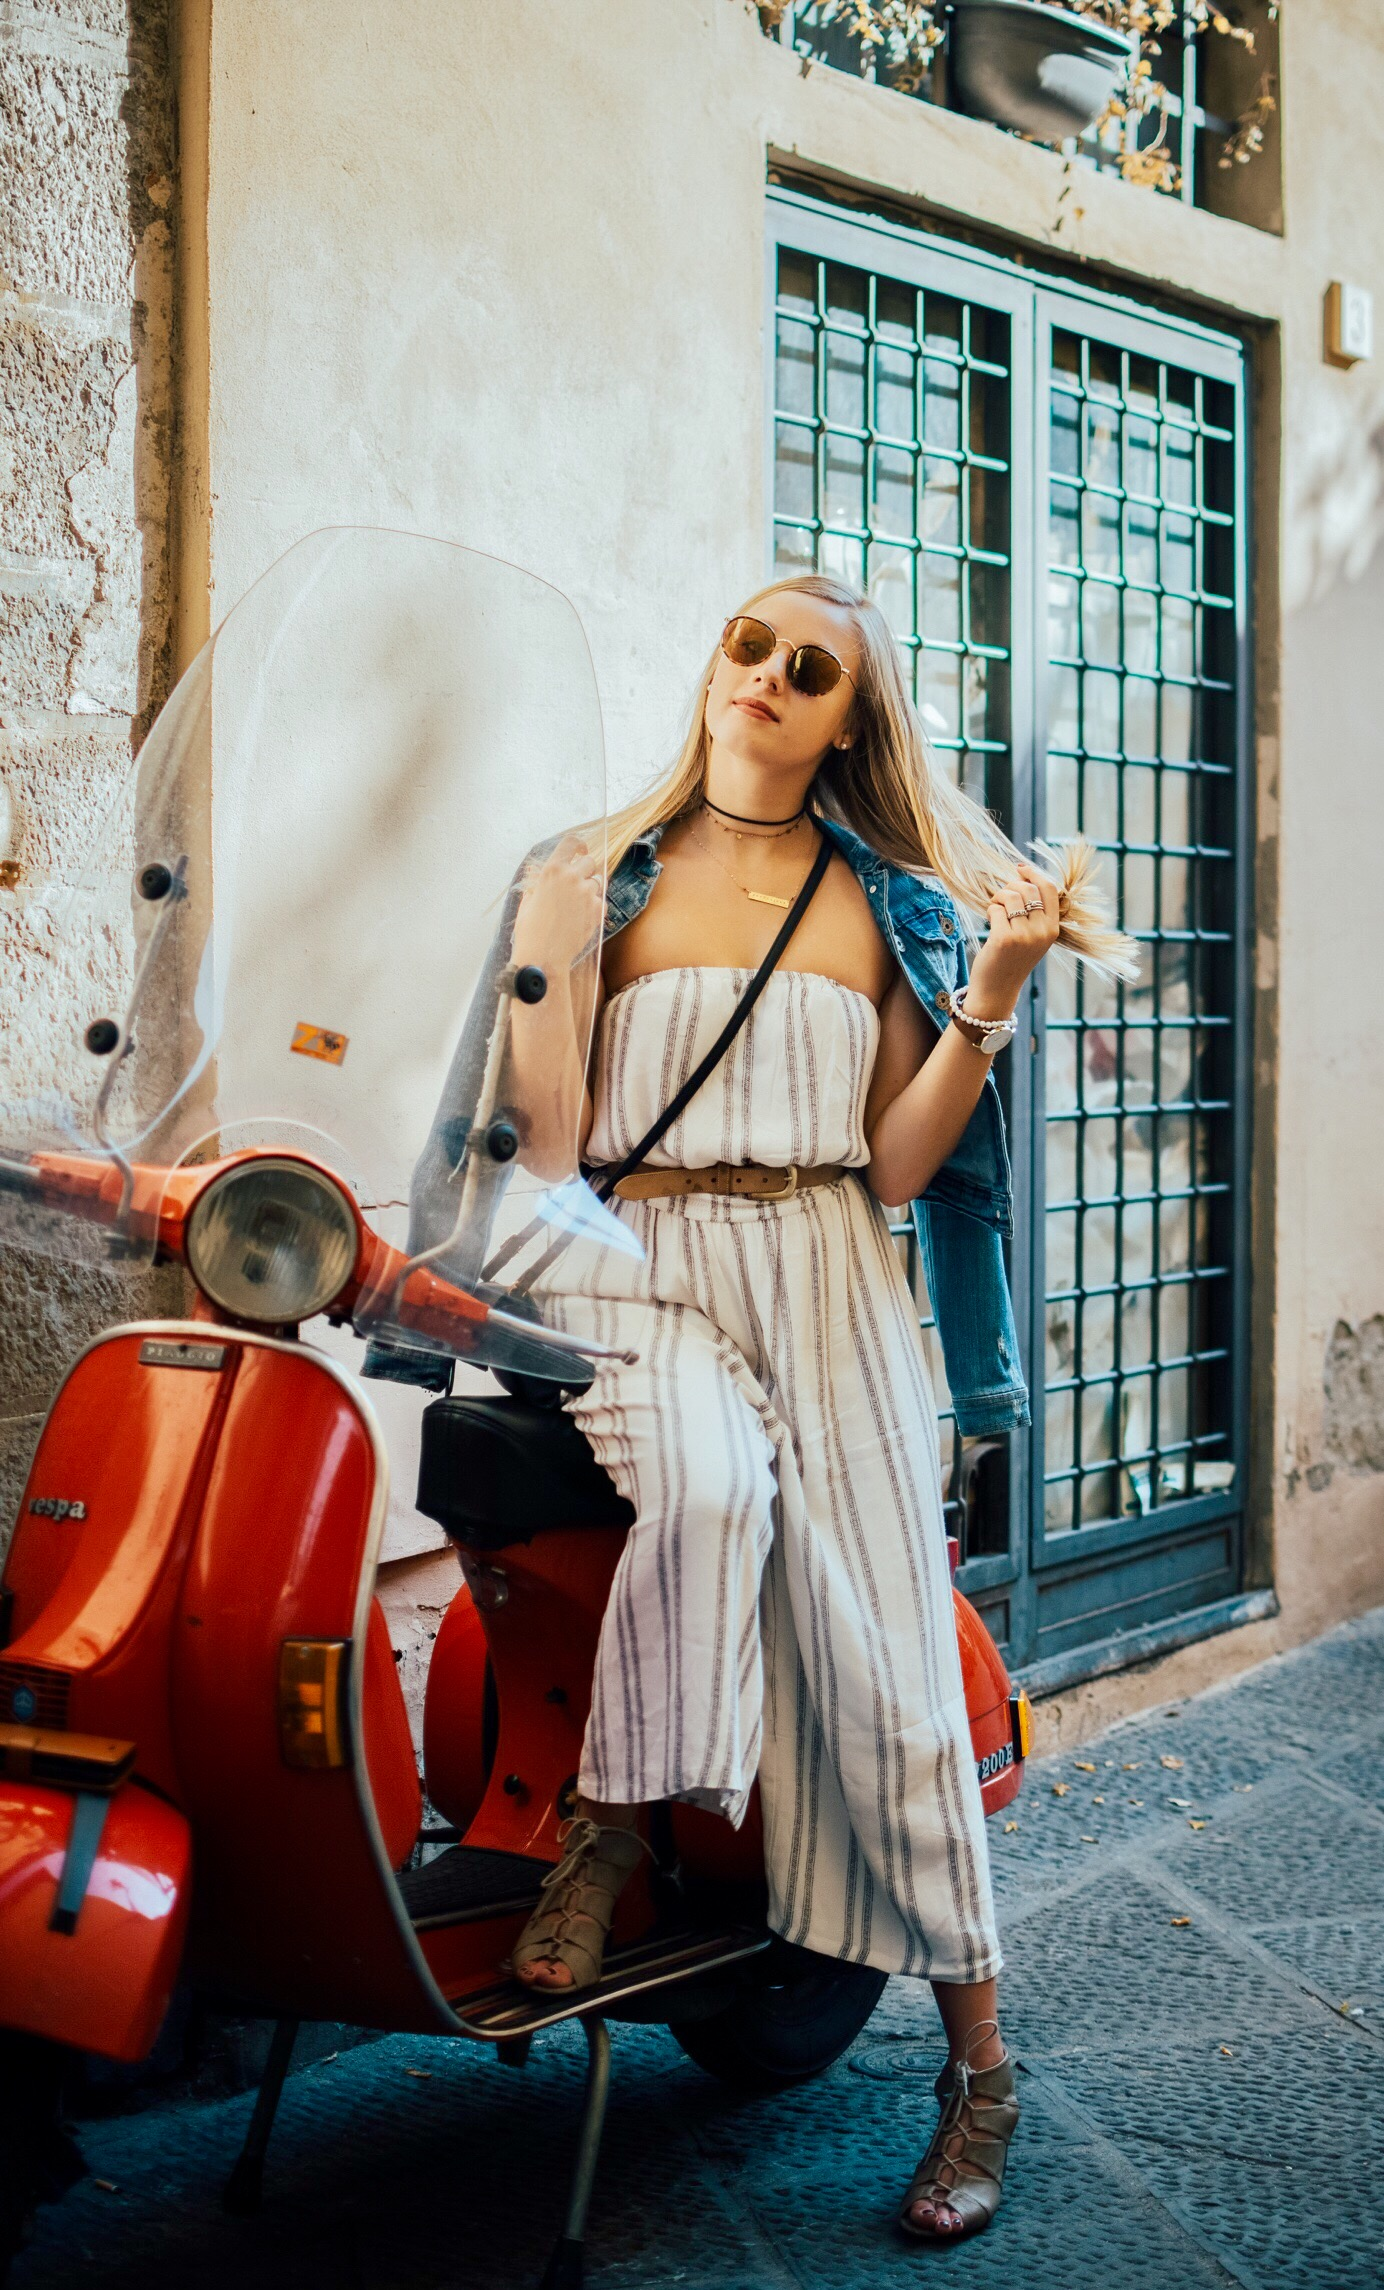 Girl poses on red vespa wearing striped jump suit and jean jacket while studying abroad in Florence, Italy